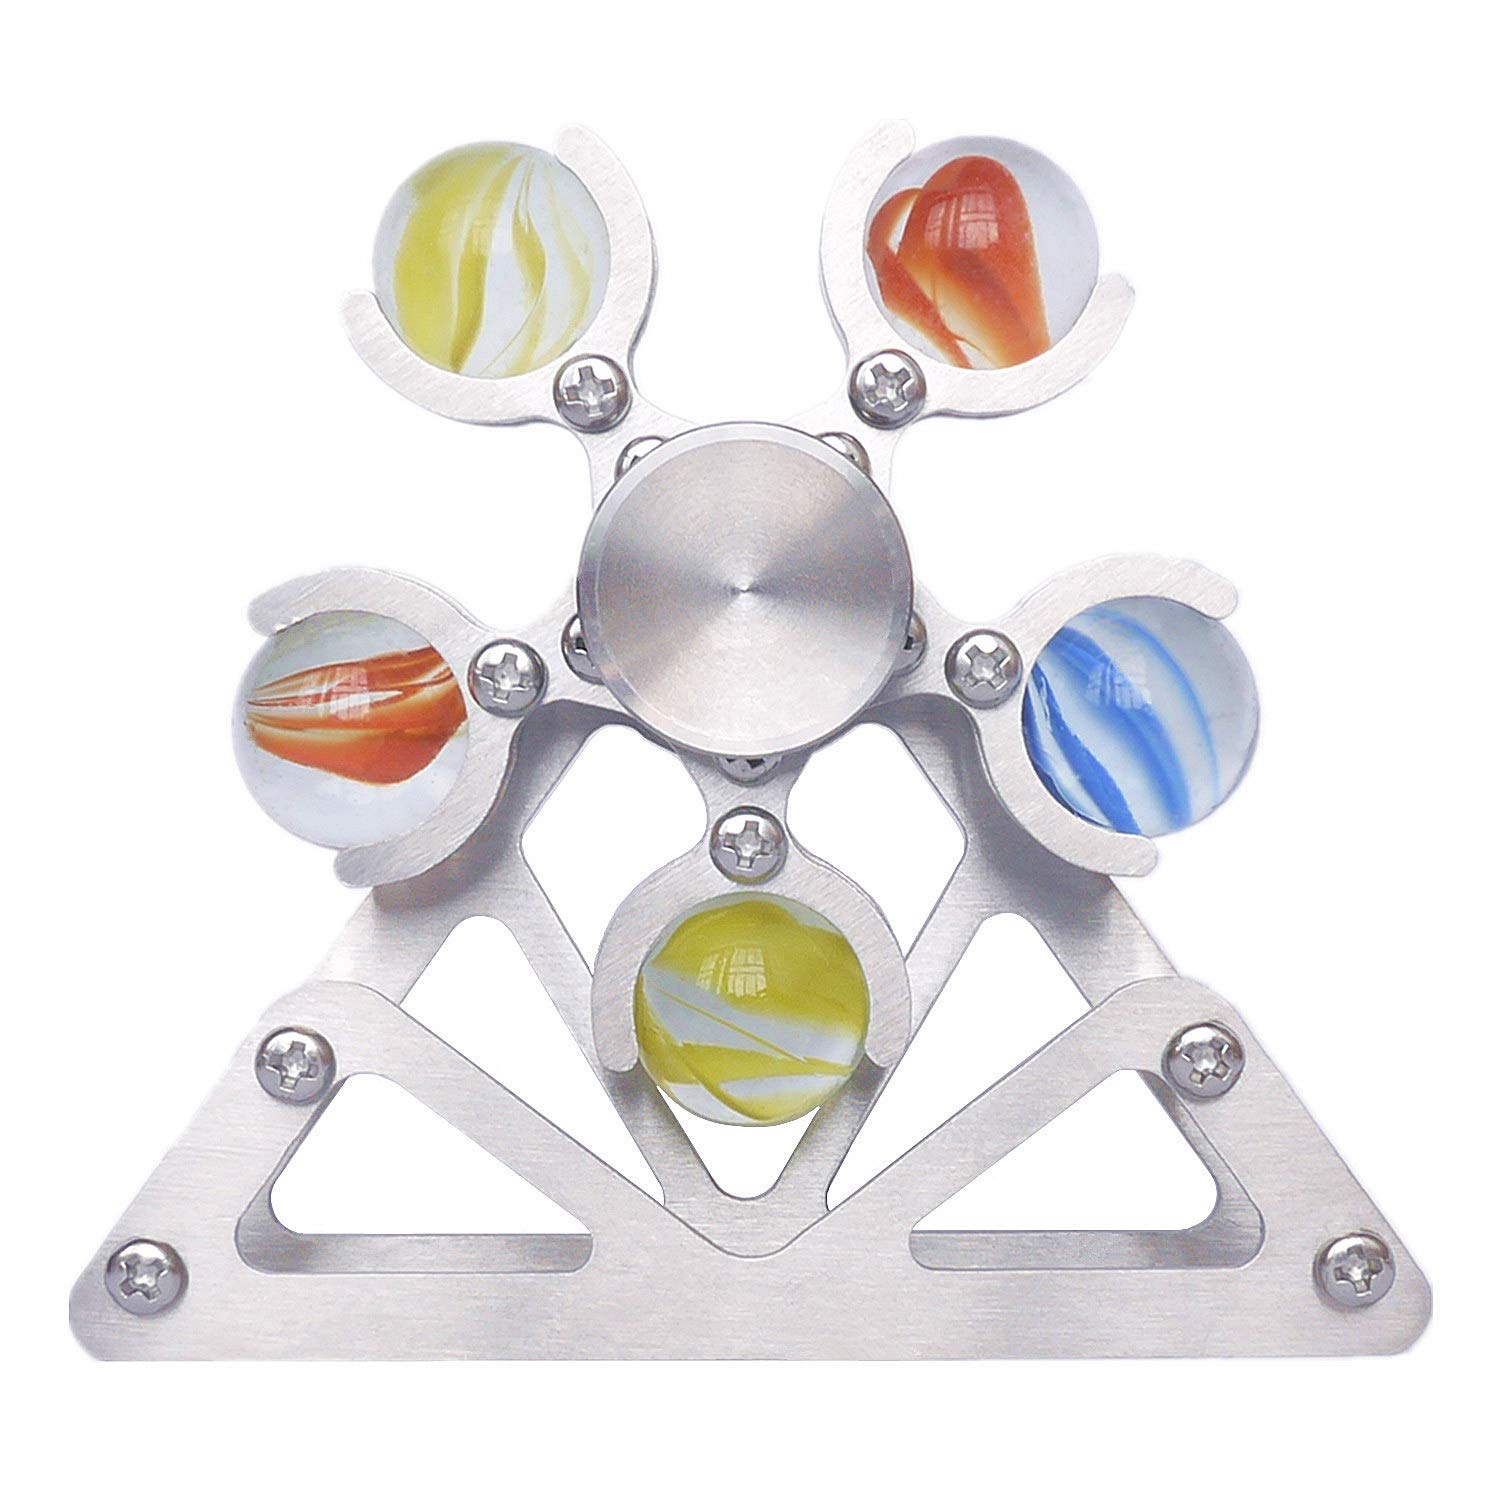 DMaos Ferris Wheel Fidget Spinner, Desk Toys Spin with Stand, Smooth Metal Stainless Steel Ceramic Stable Bearing EDC, High Speed Colorful Marble Rainbow, Premium Figit Toy for Adults Kids - 10 Balls by DMaos (Image #2)